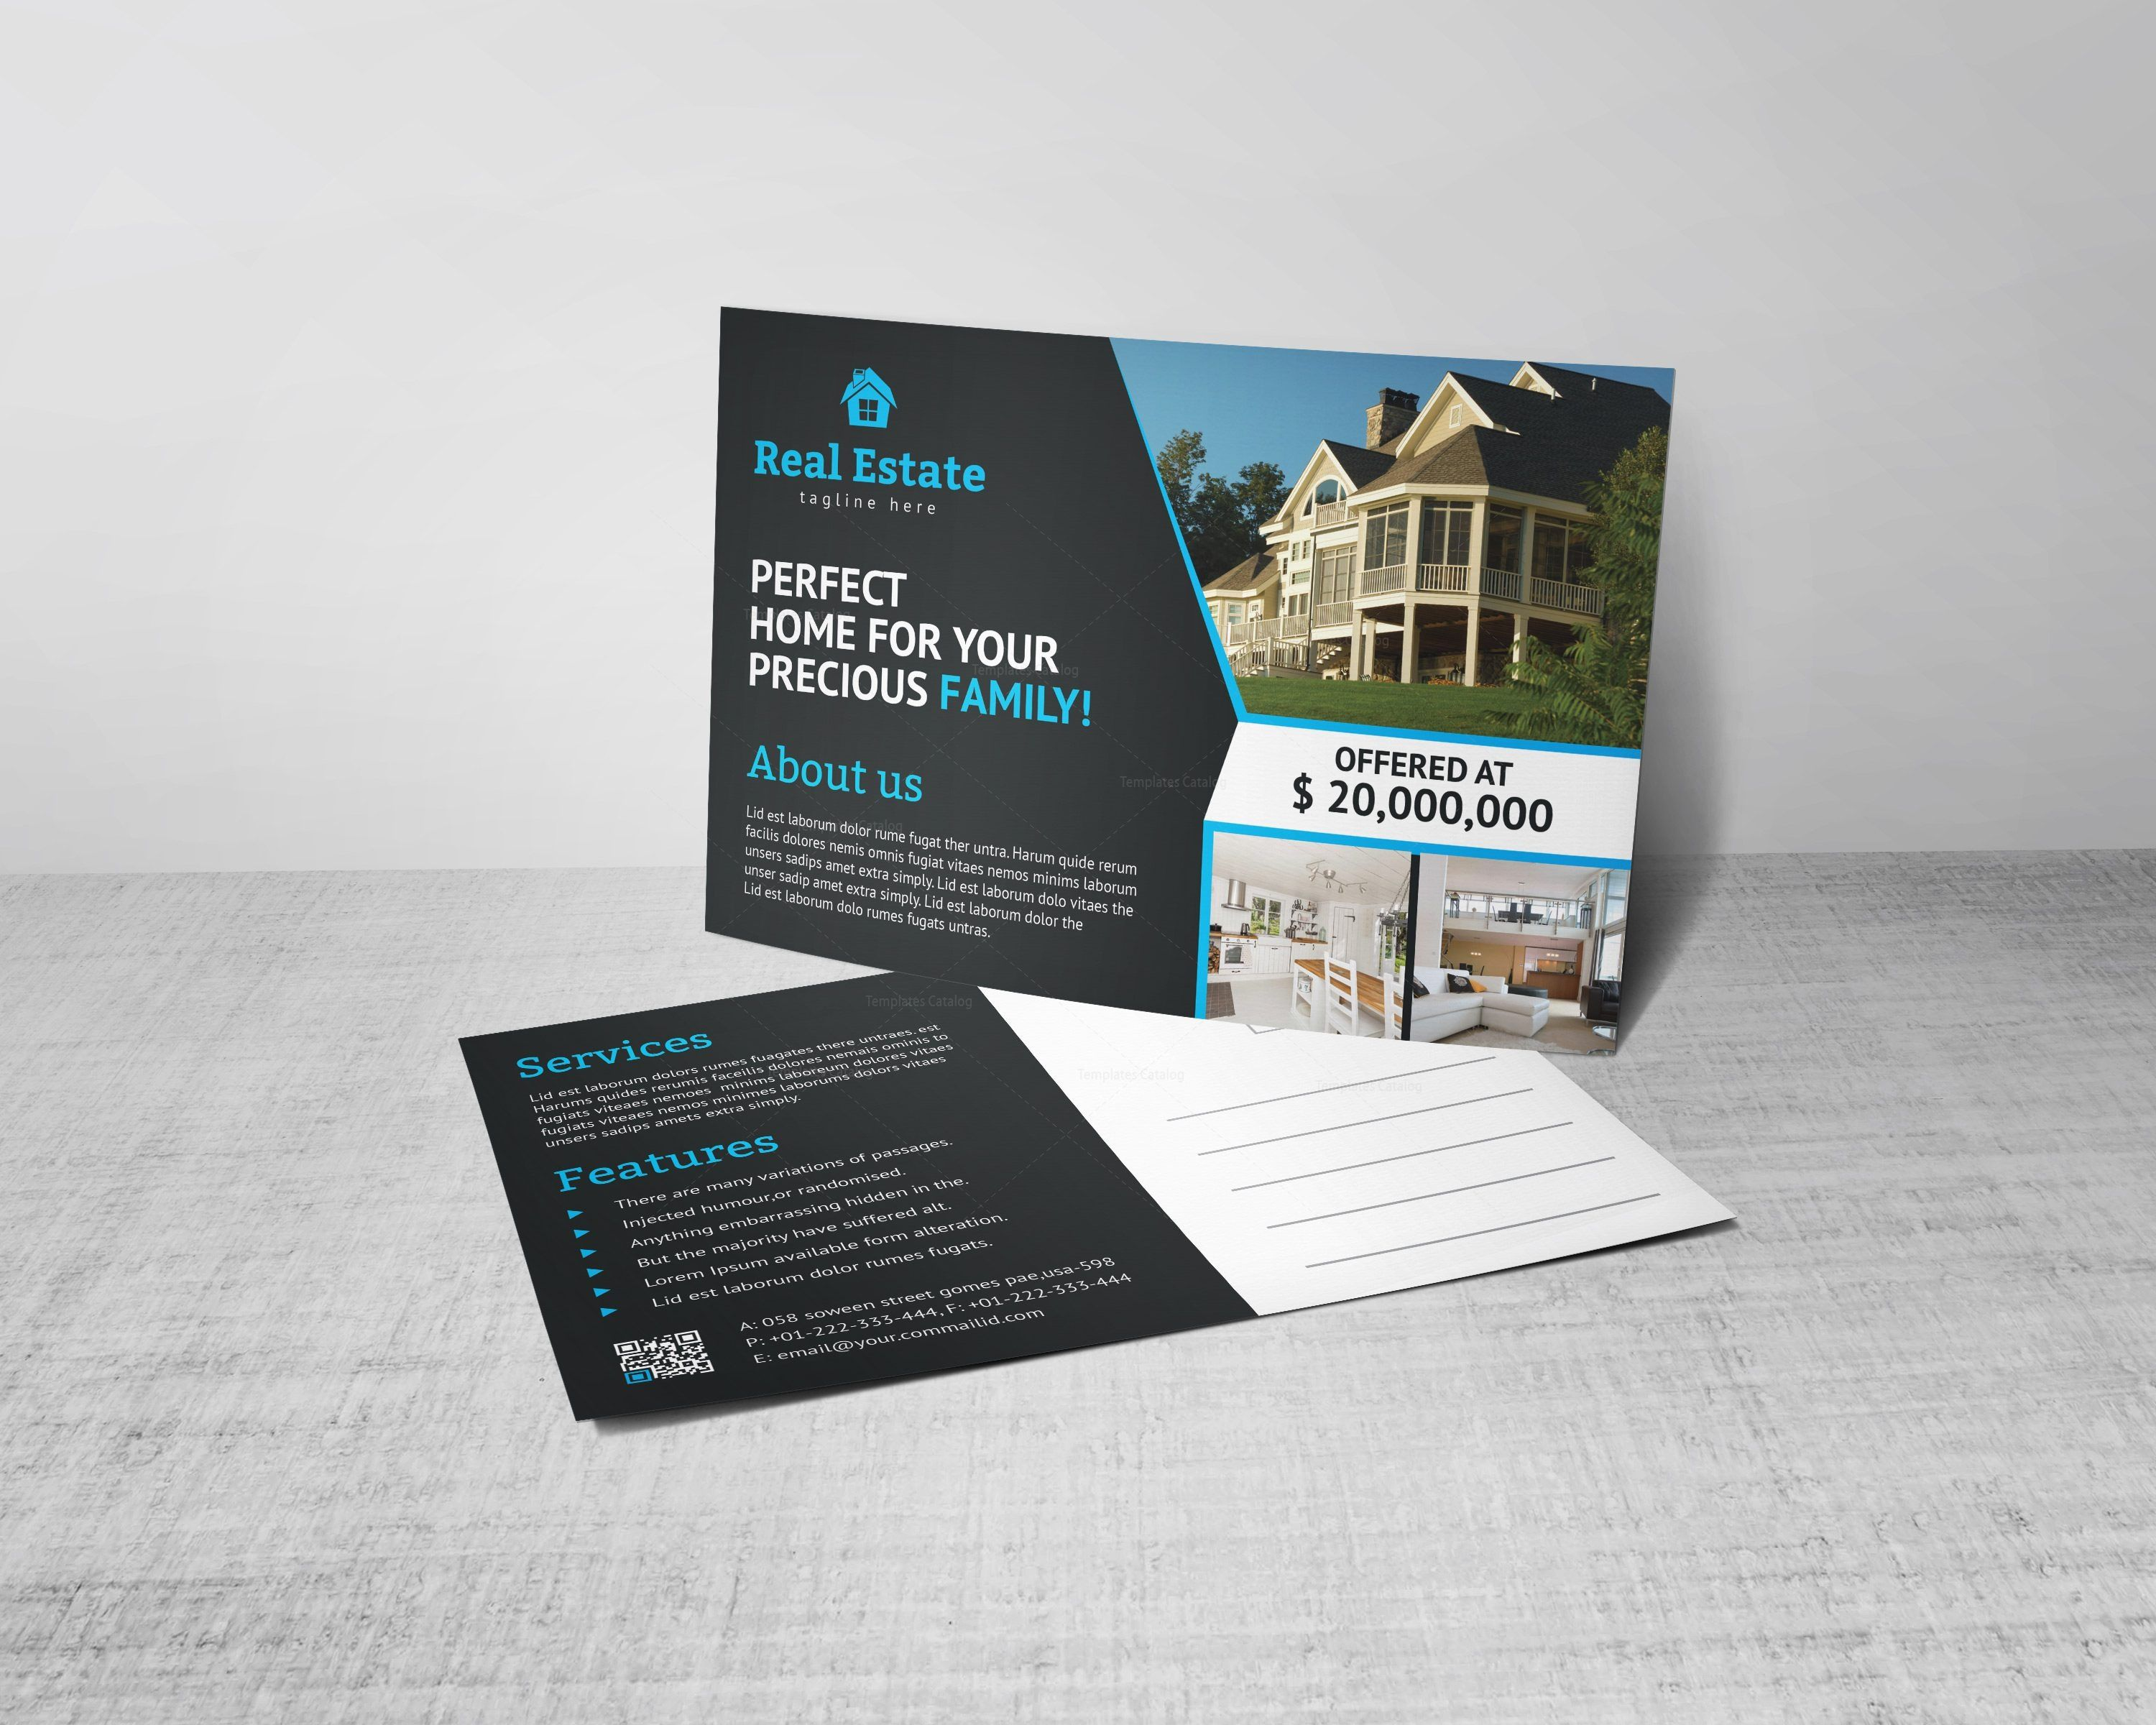 008 Phenomenal Real Estate Postcard Template Concept  Agent For Photoshop InvestorFull